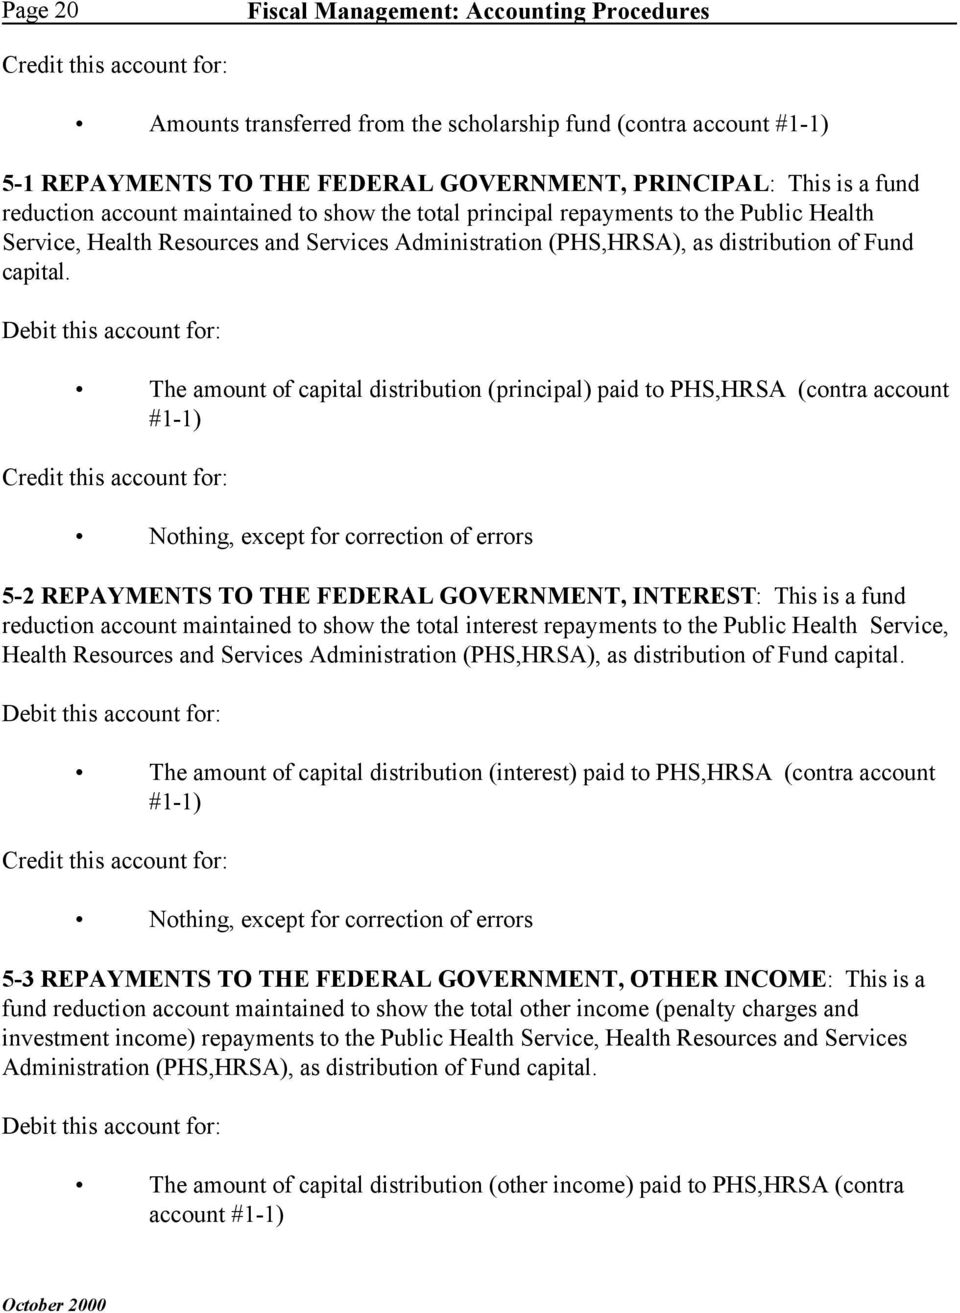 The amount of capital distribution (principal) paid to PHS,HRSA (contra account #1-1) Nothing, except for correction of errors 5-2 REPAYMENTS TO THE FEDERAL GOVERNMENT, INTEREST: This is a fund